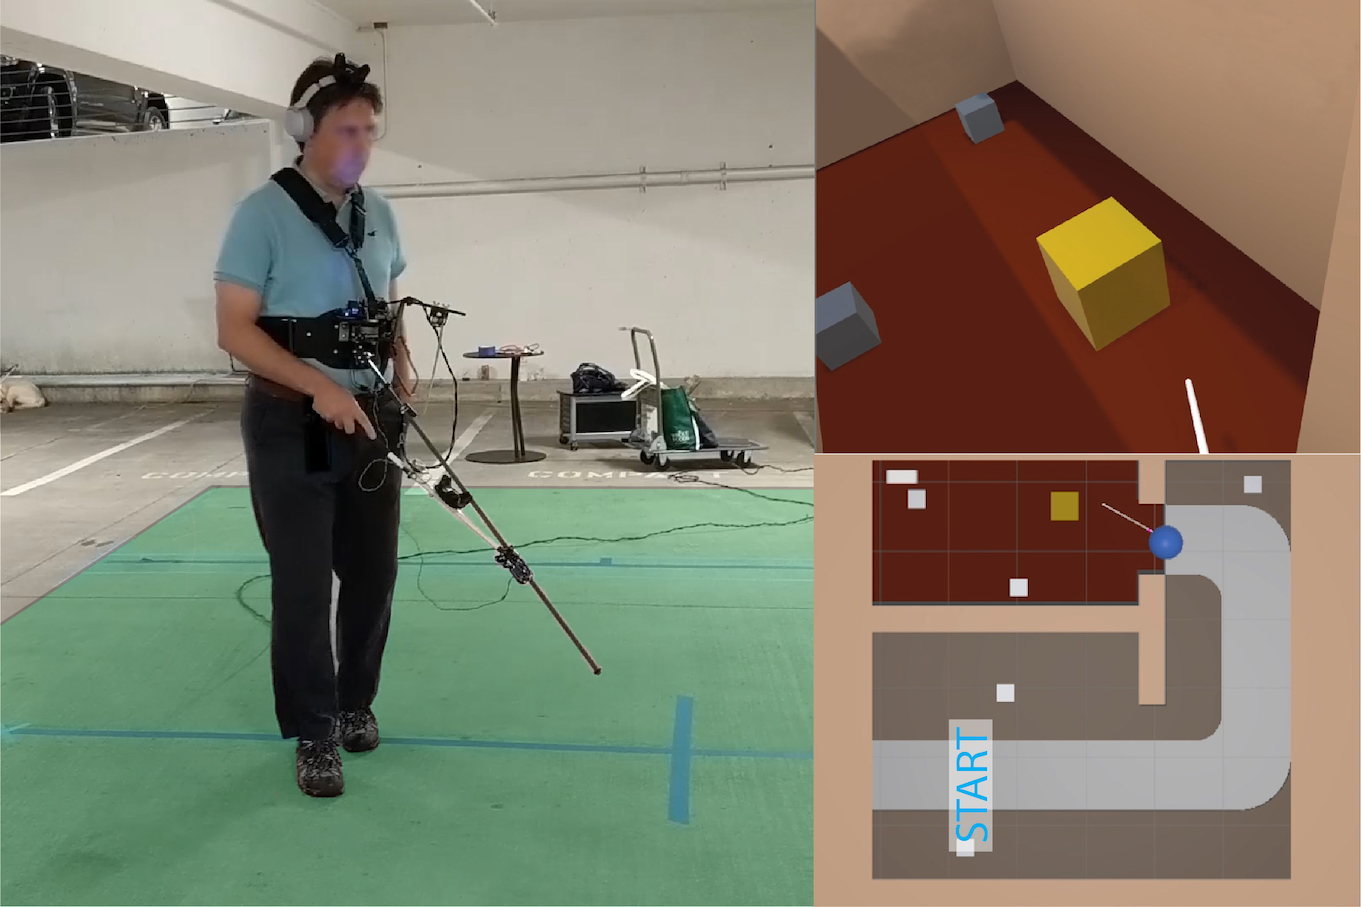 'Three images. The first shows a person wearing the  prototype of a white cane VR controller. The second shows  the first-person view that the person would see if they were  wearing a head-mounted display in VR. The last shows the  overhead view of the map of a virtual environment along  with the position of the user.'